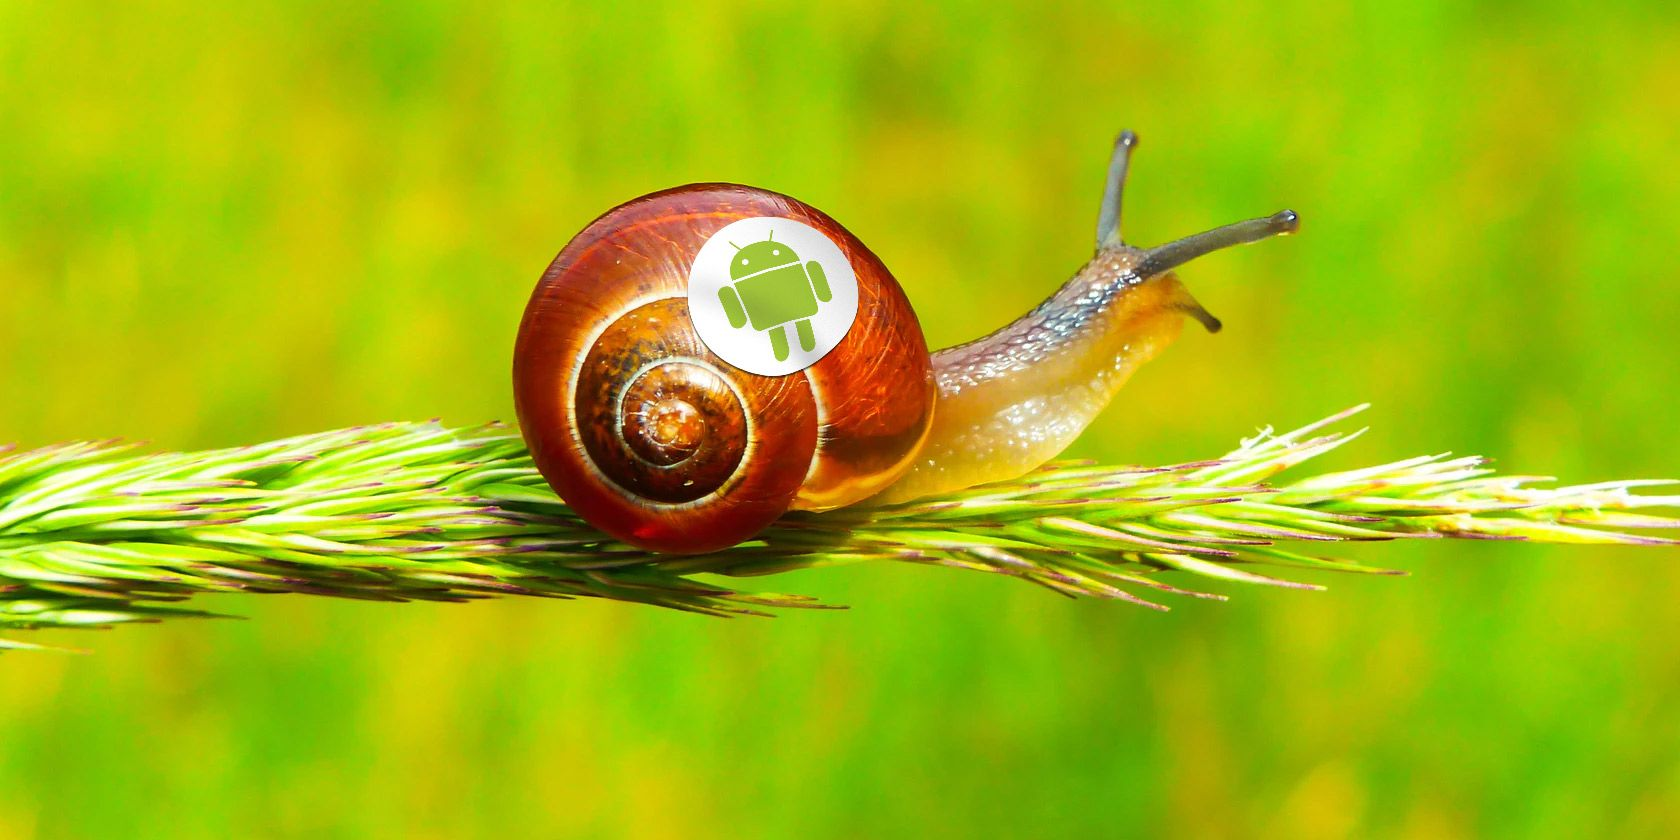 These Android Apps Are Slowing Down Your Phone! - cover